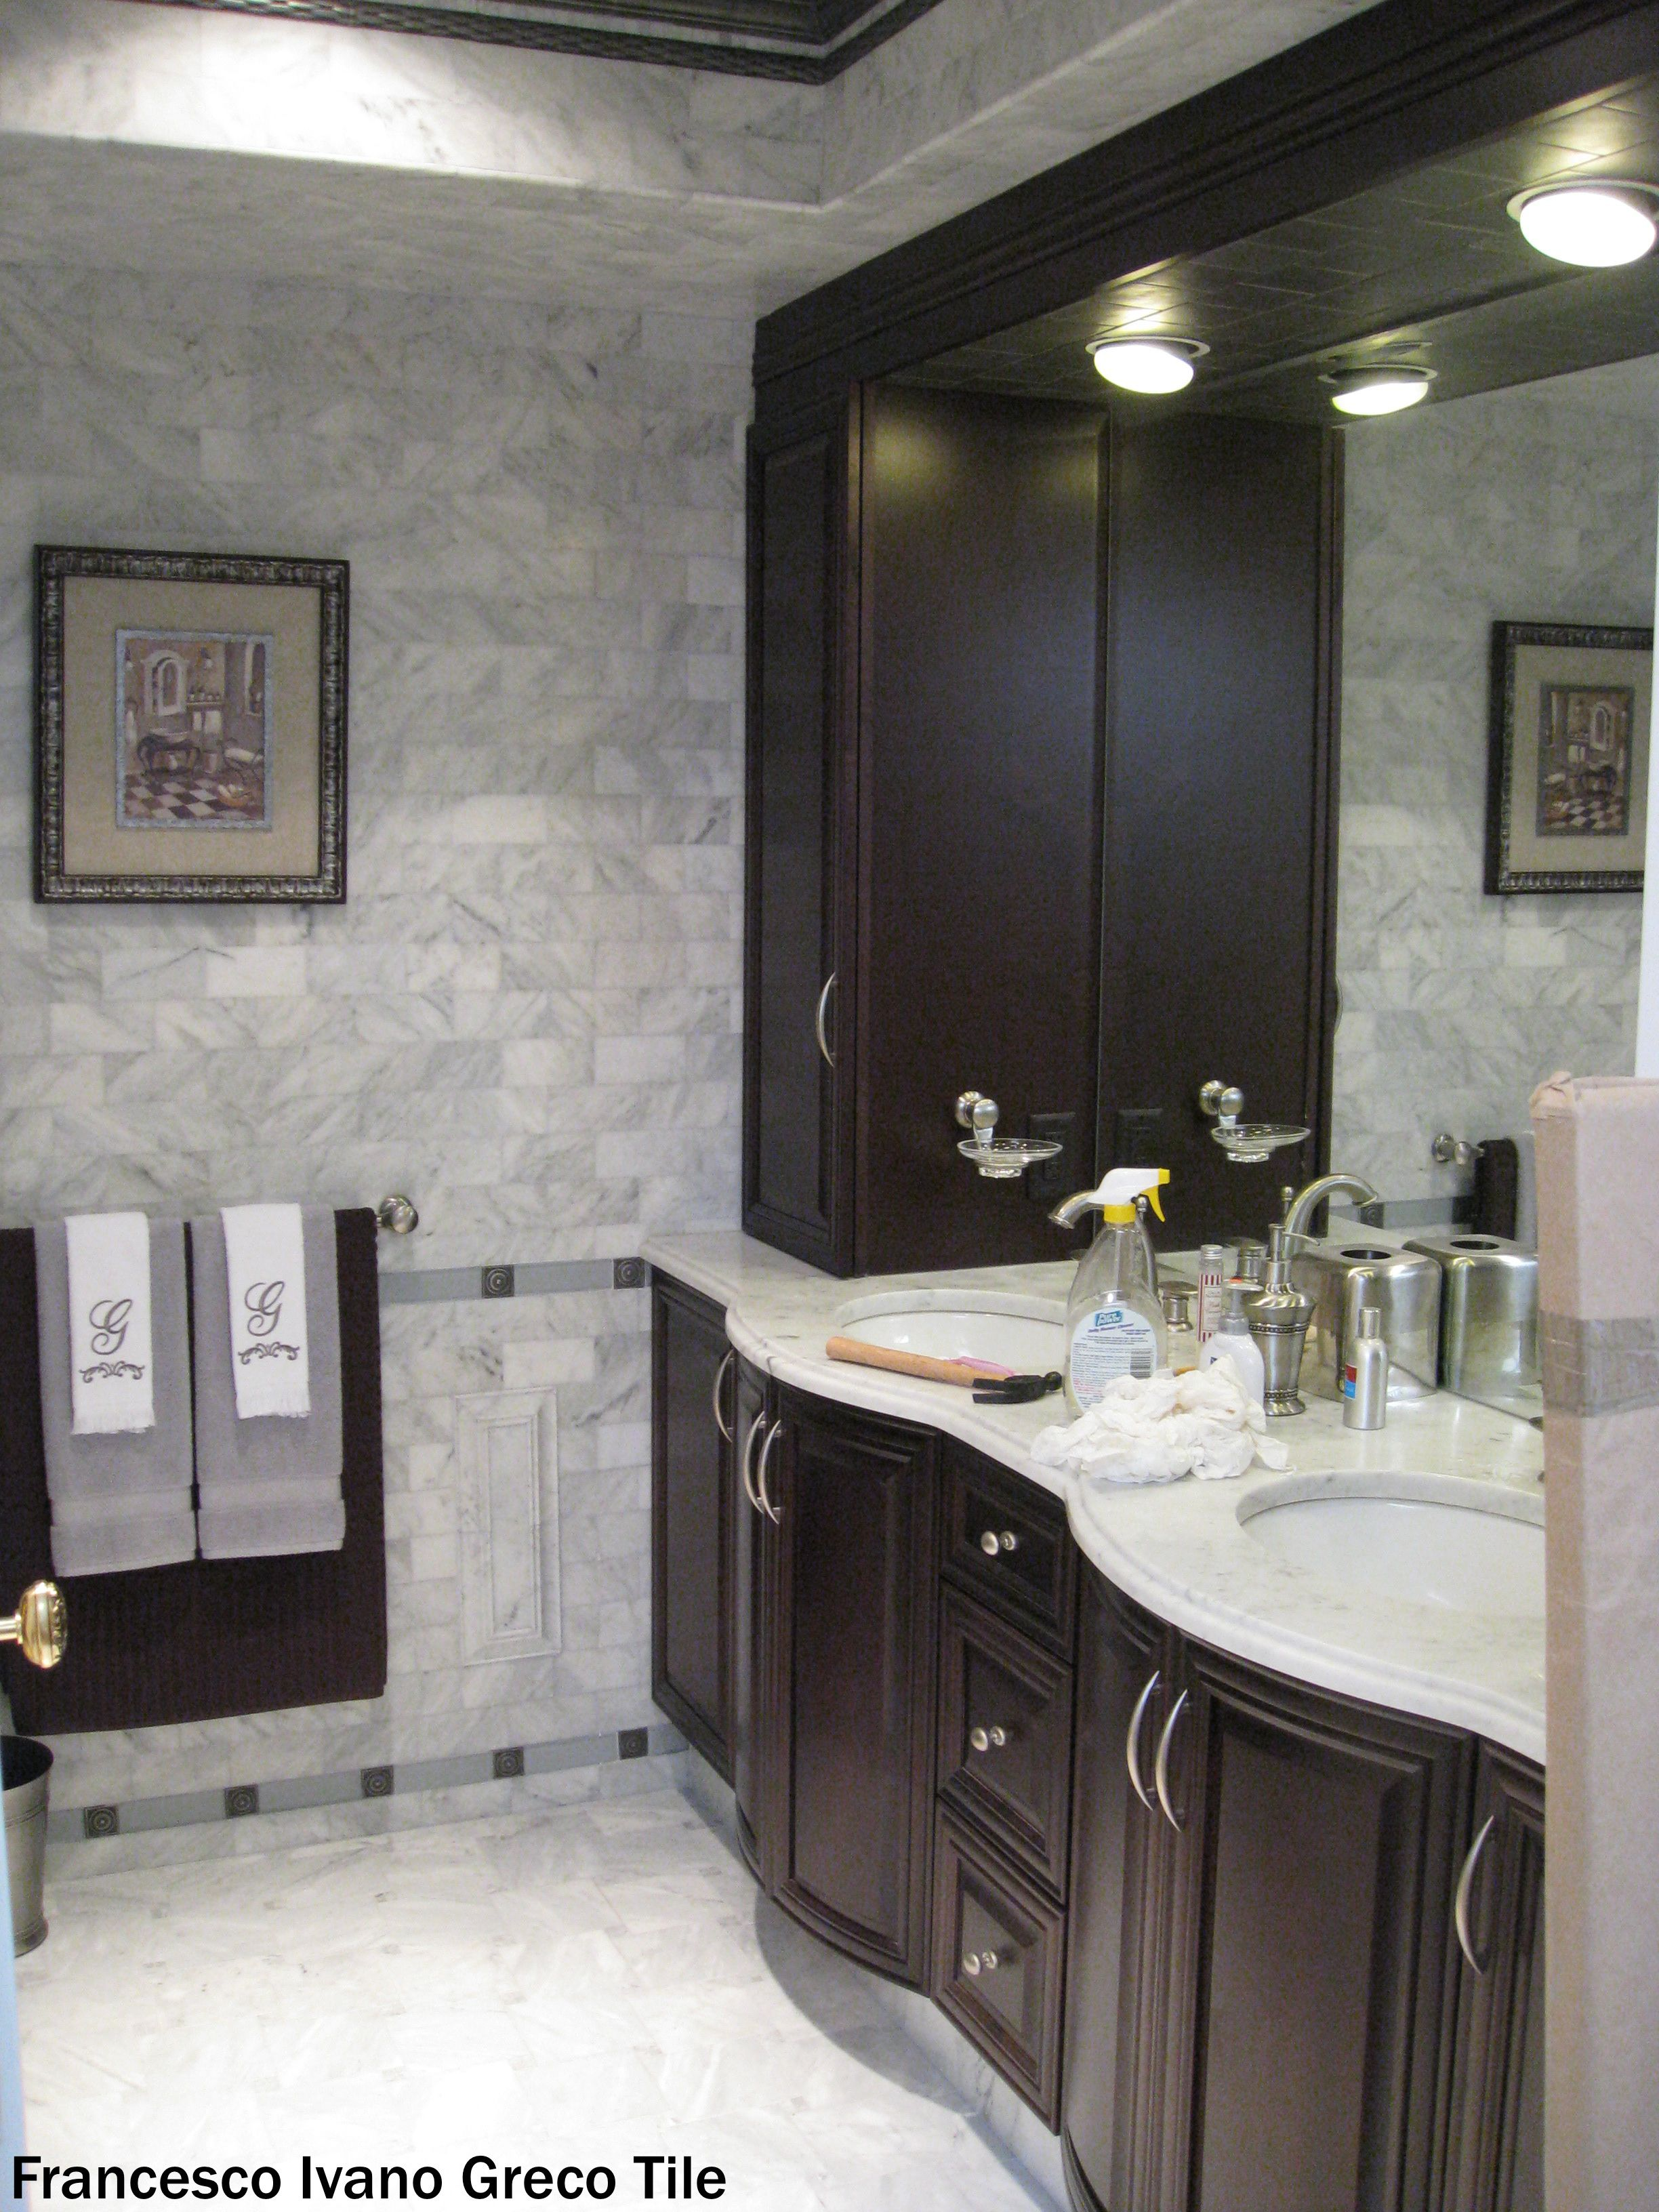 We Were Not Done Cleaning This Bathroom But The Renovation Is Looking Better Than Ever With The Marble Walls Bushed Nickel Hardware An Bathroom Renovation Cost